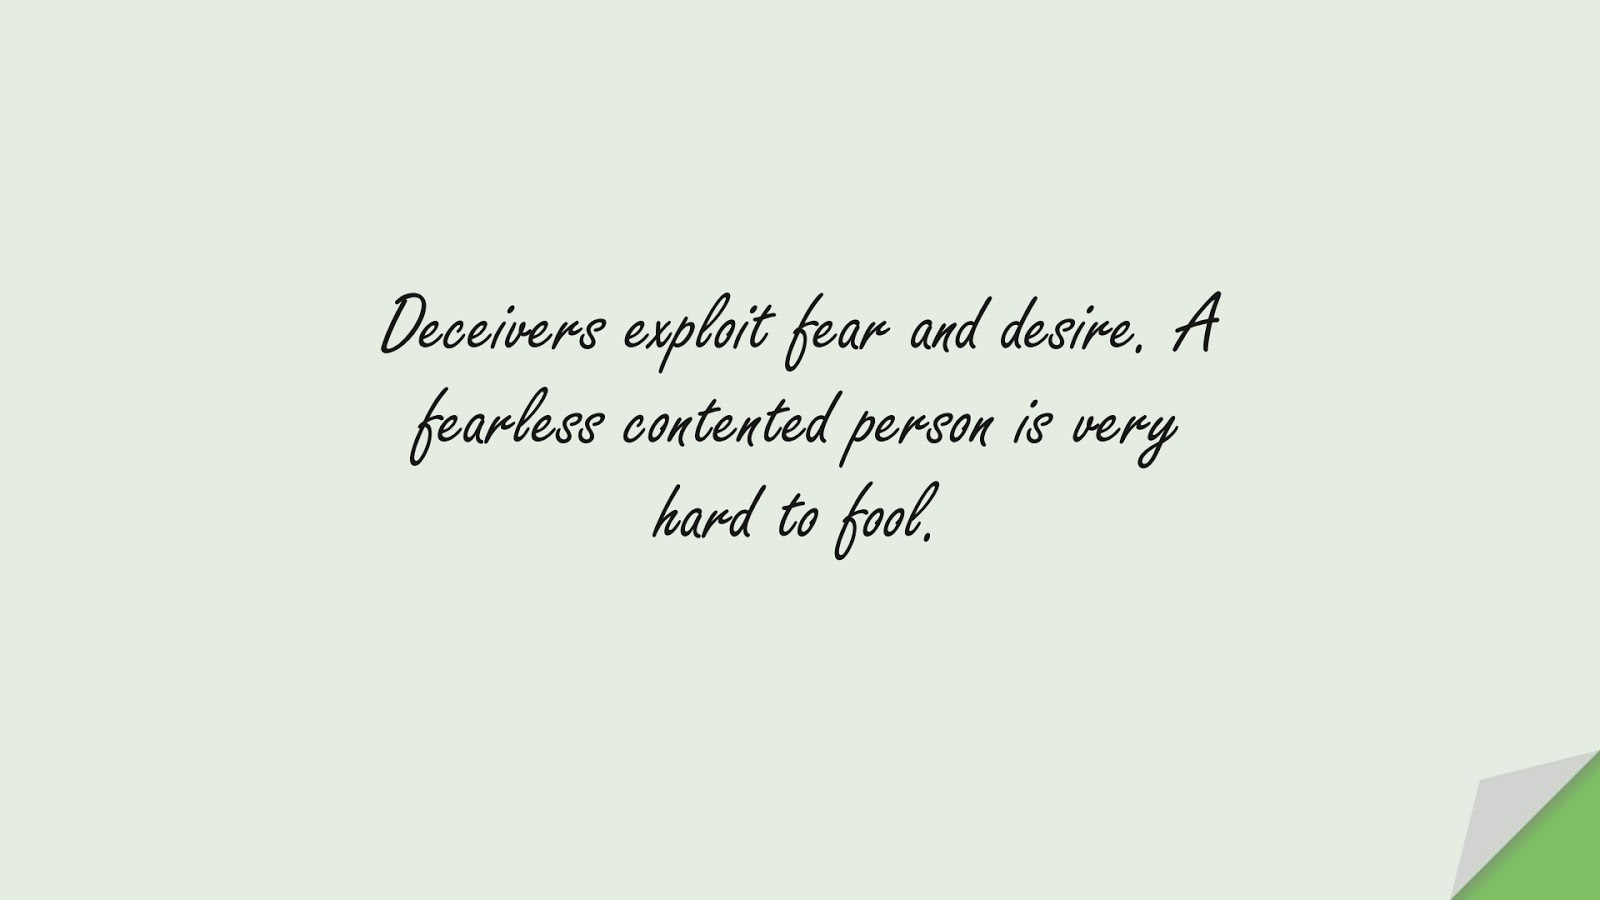 Deceivers exploit fear and desire. A fearless contented person is very hard to fool.FALSE